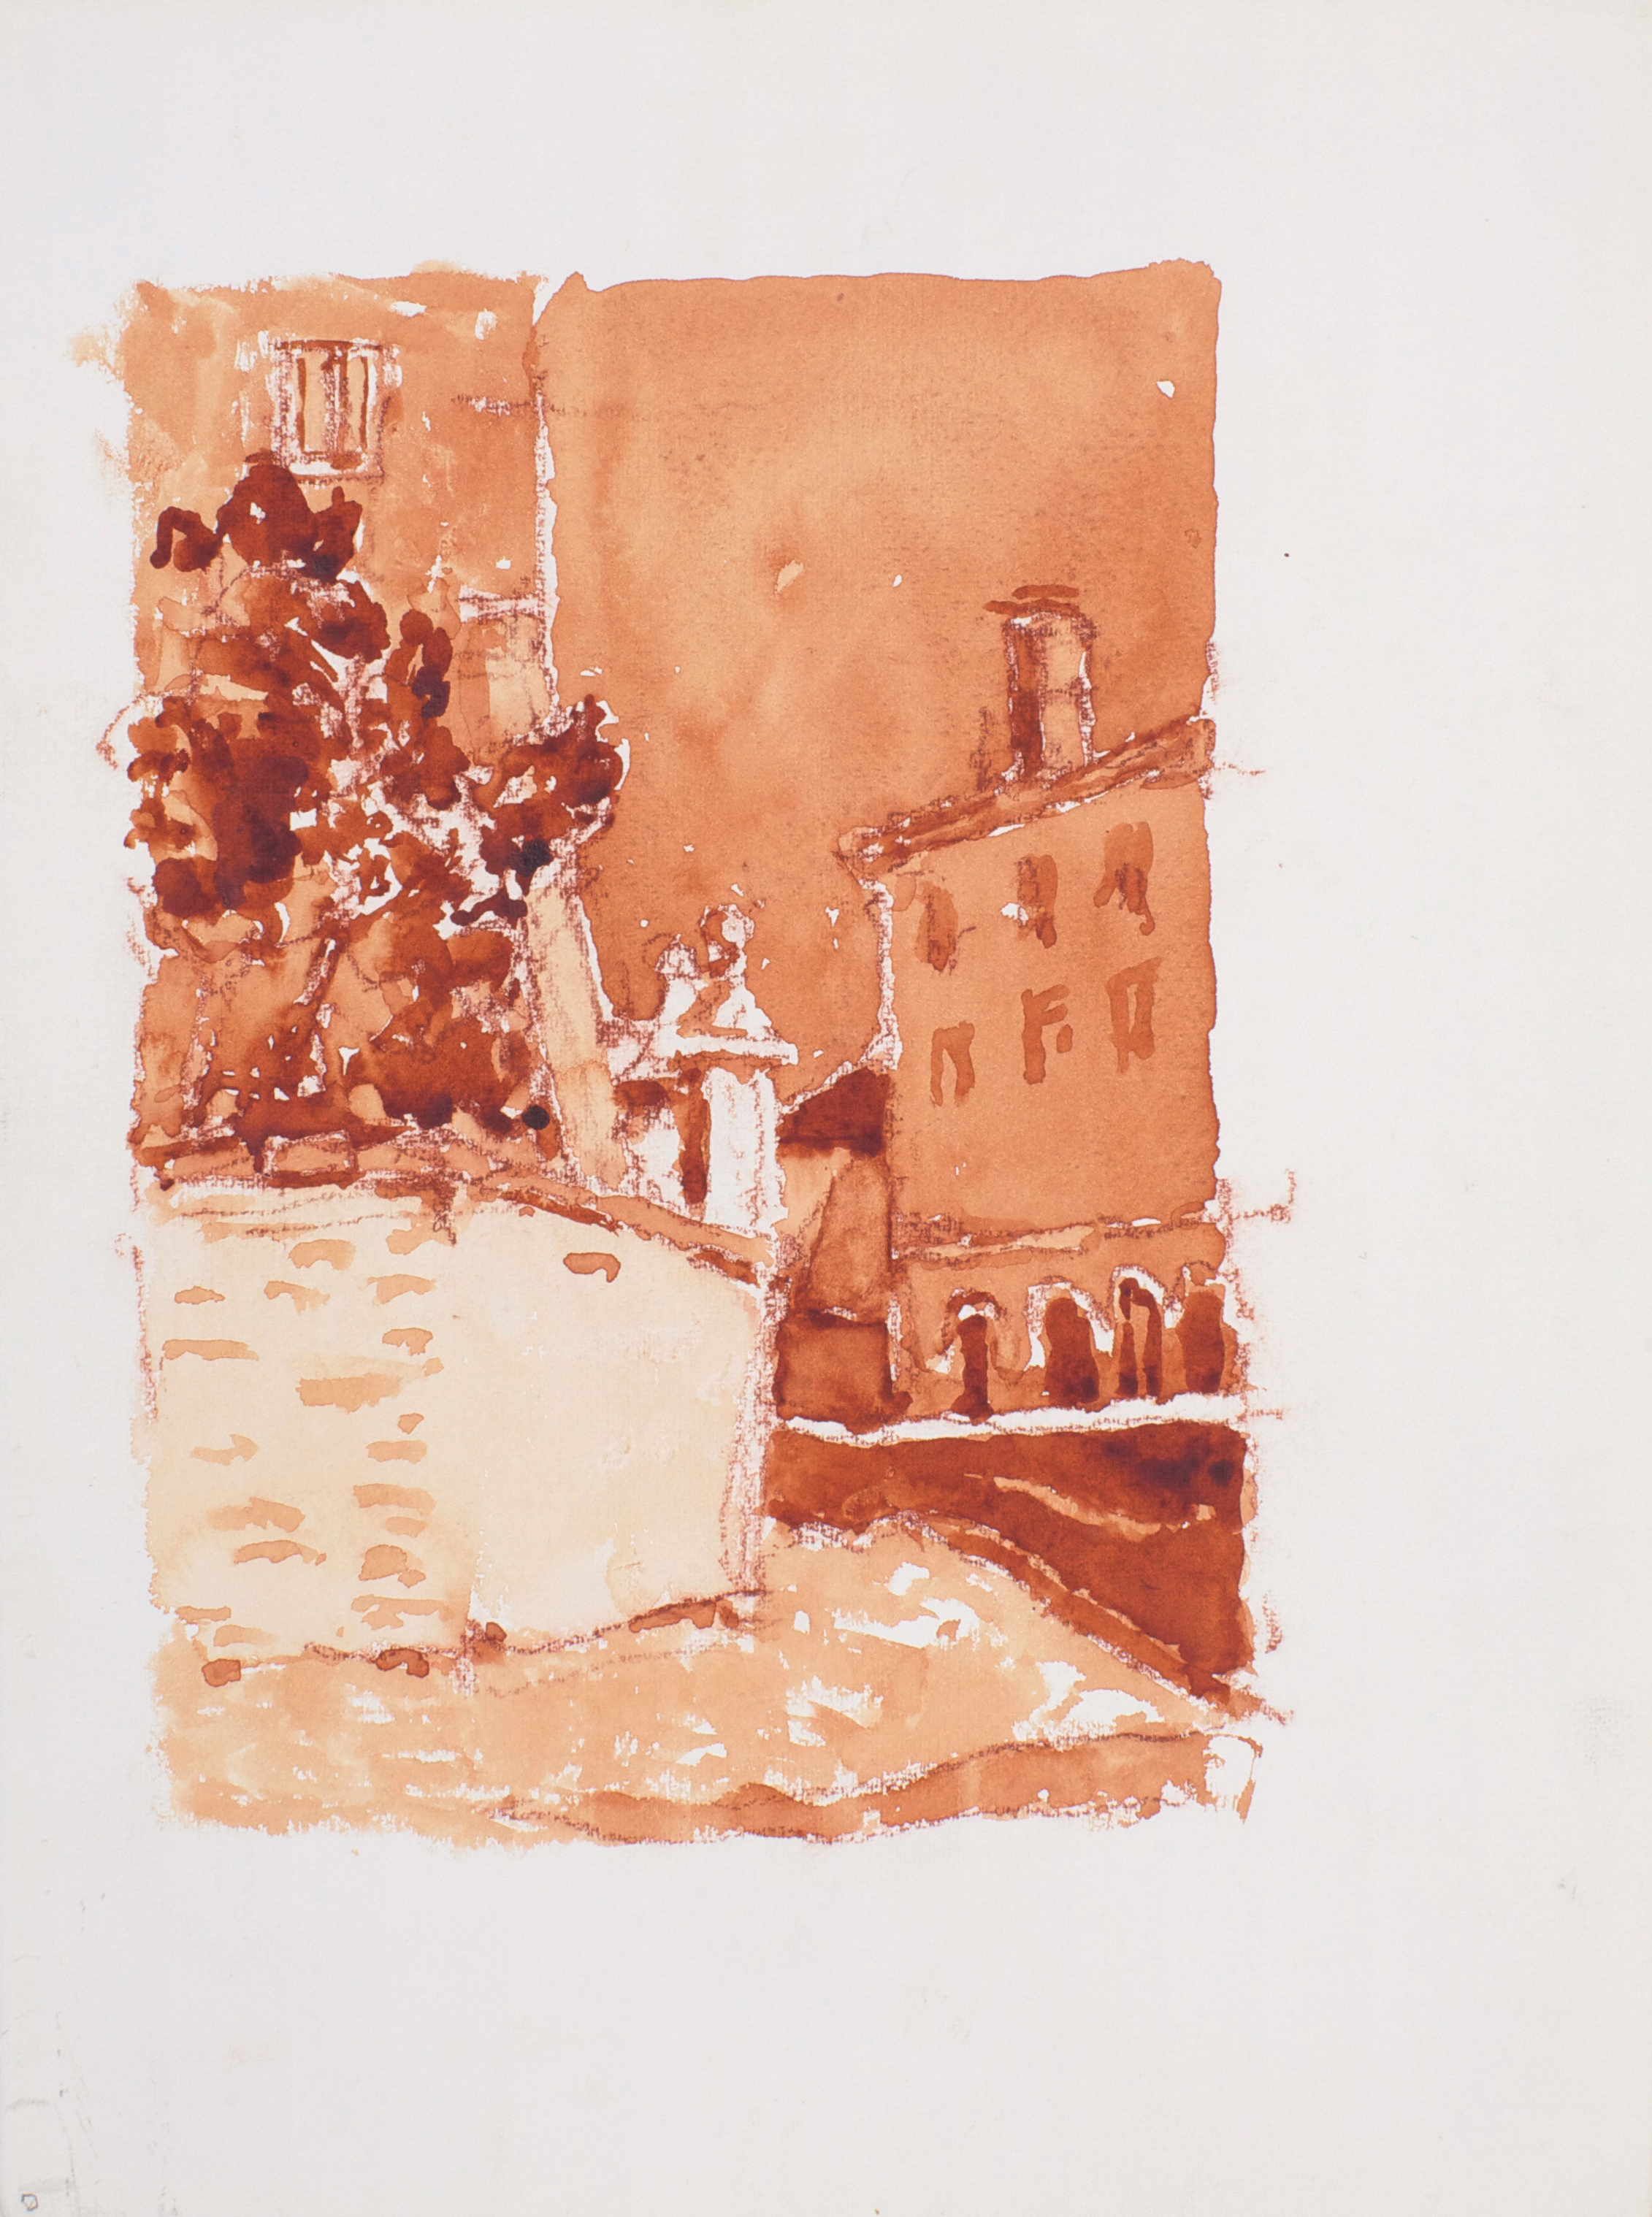 2002_Curved_Wall_Venice_watercolour_and_red_conte_on_paper_15x11in_38x28cm_WPF337.jpg